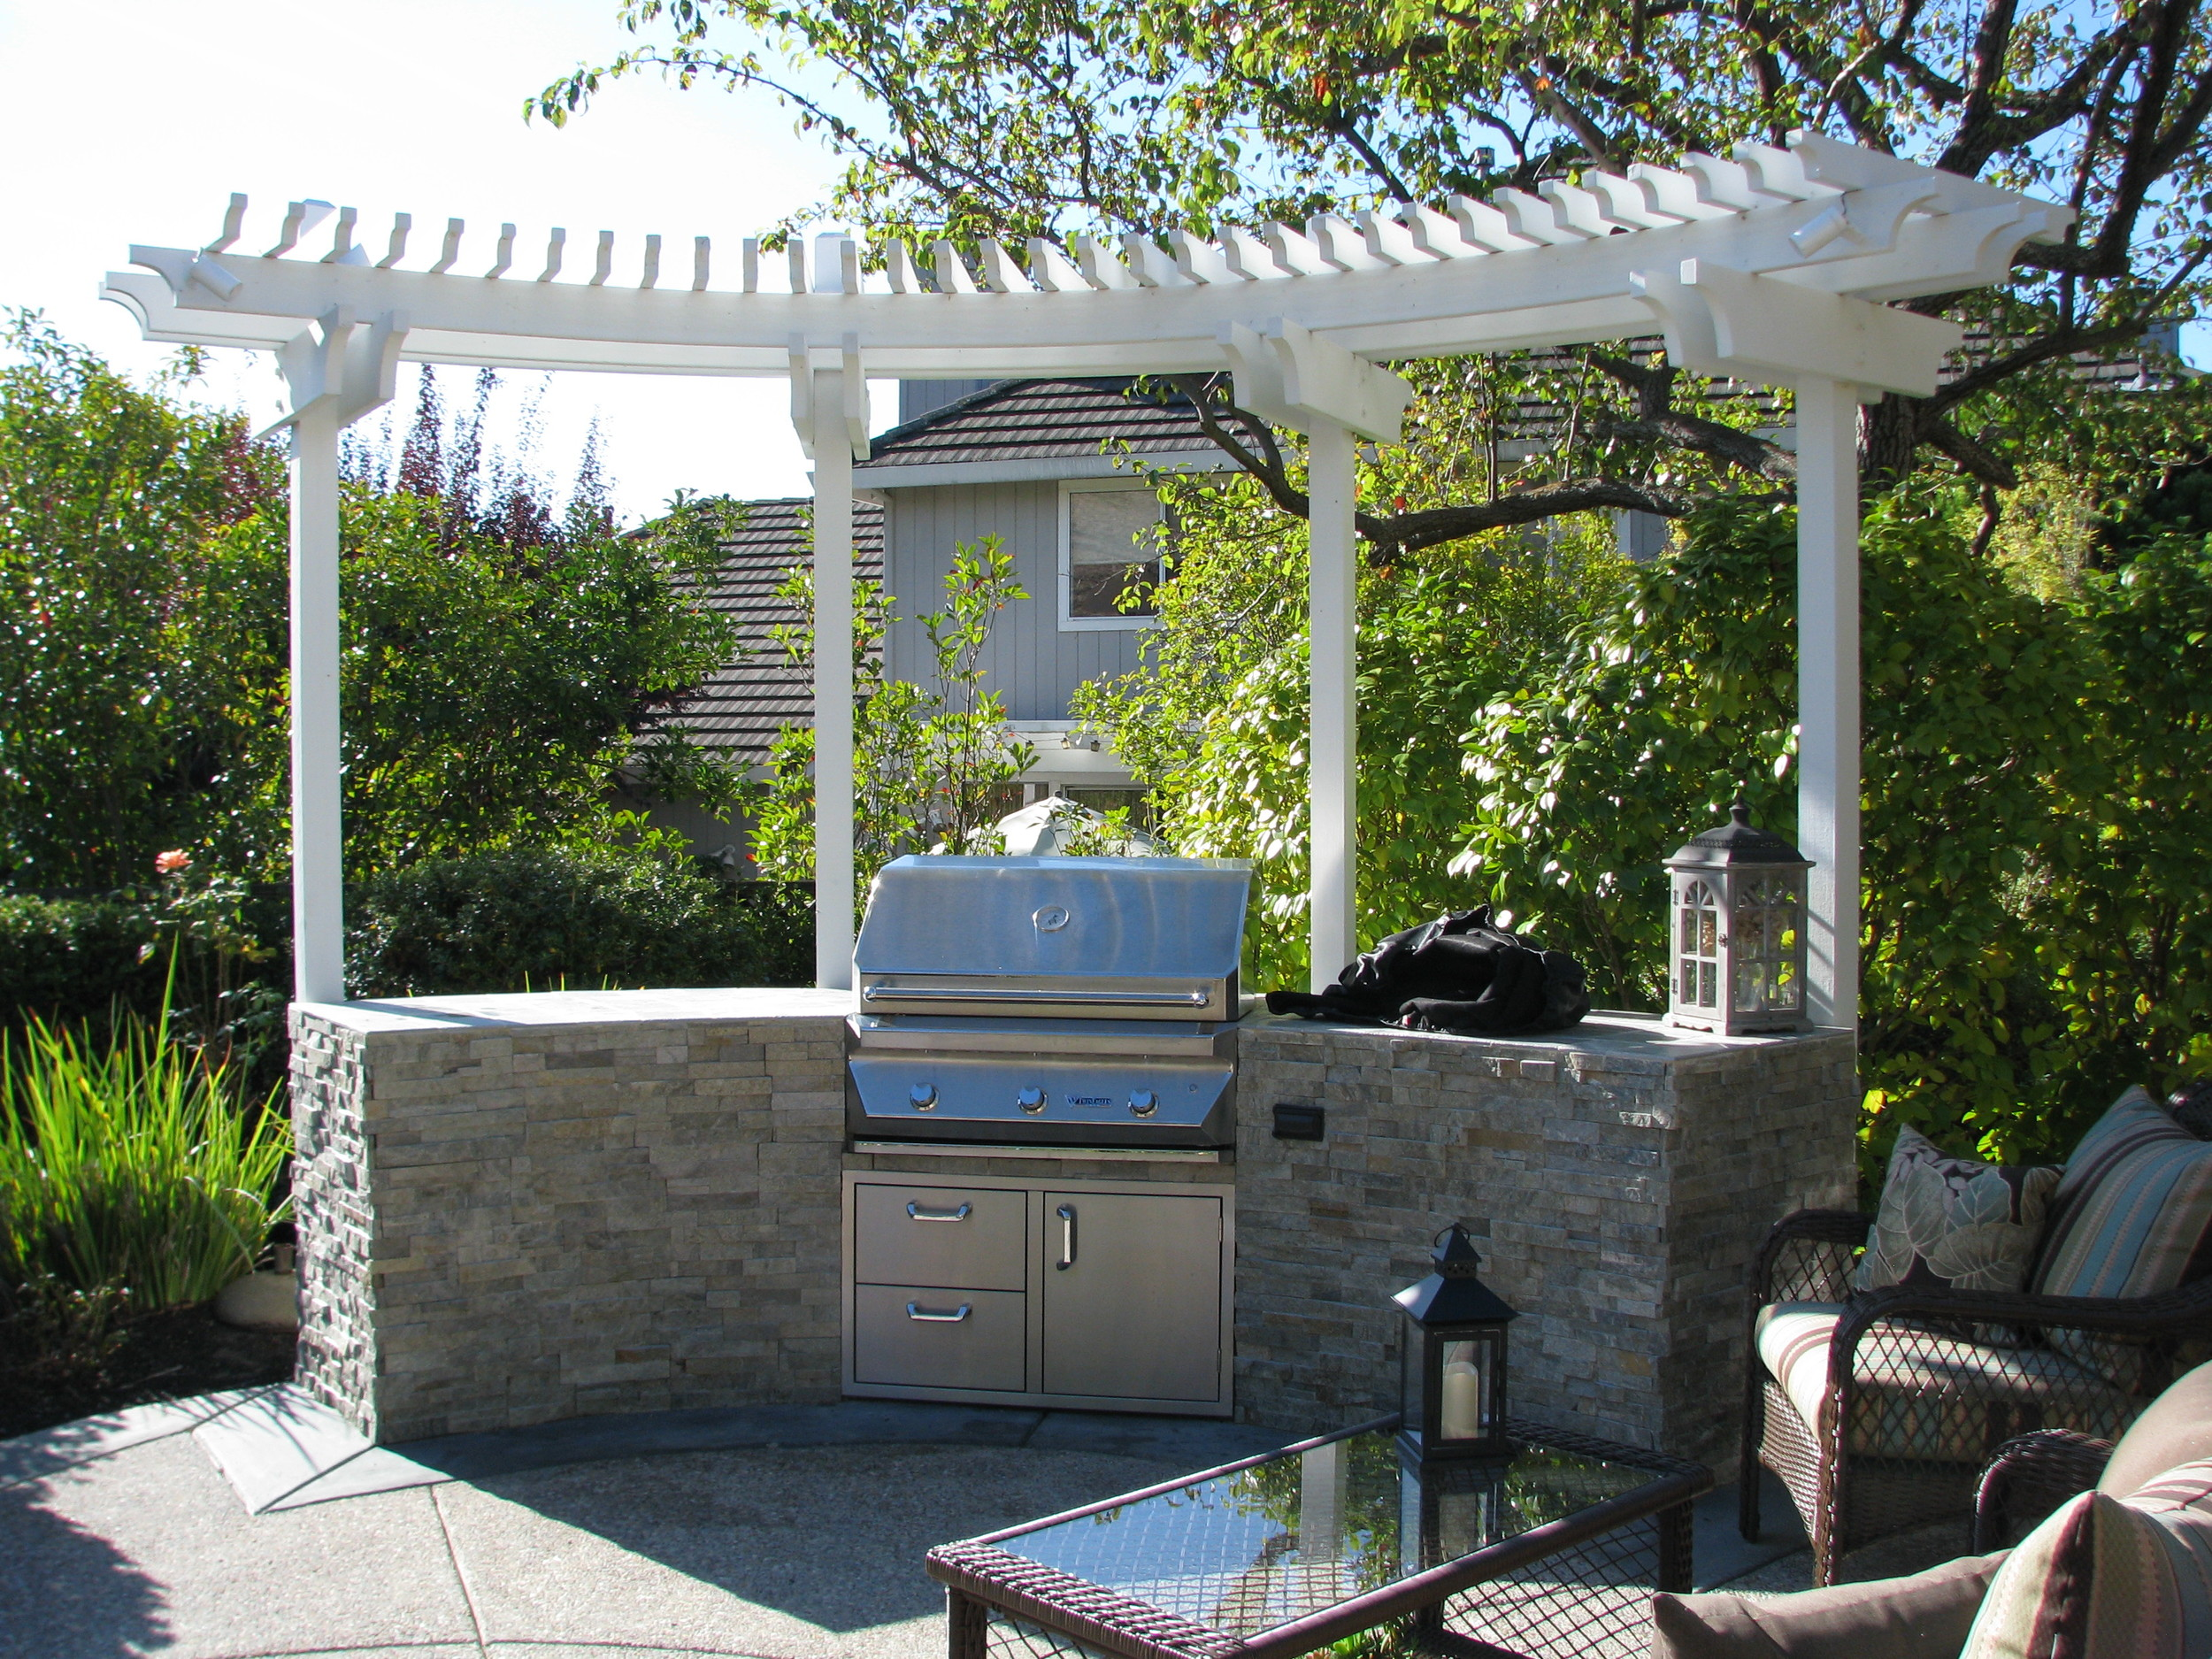 BBQ island and arbor for outdoor cooking and entertaining